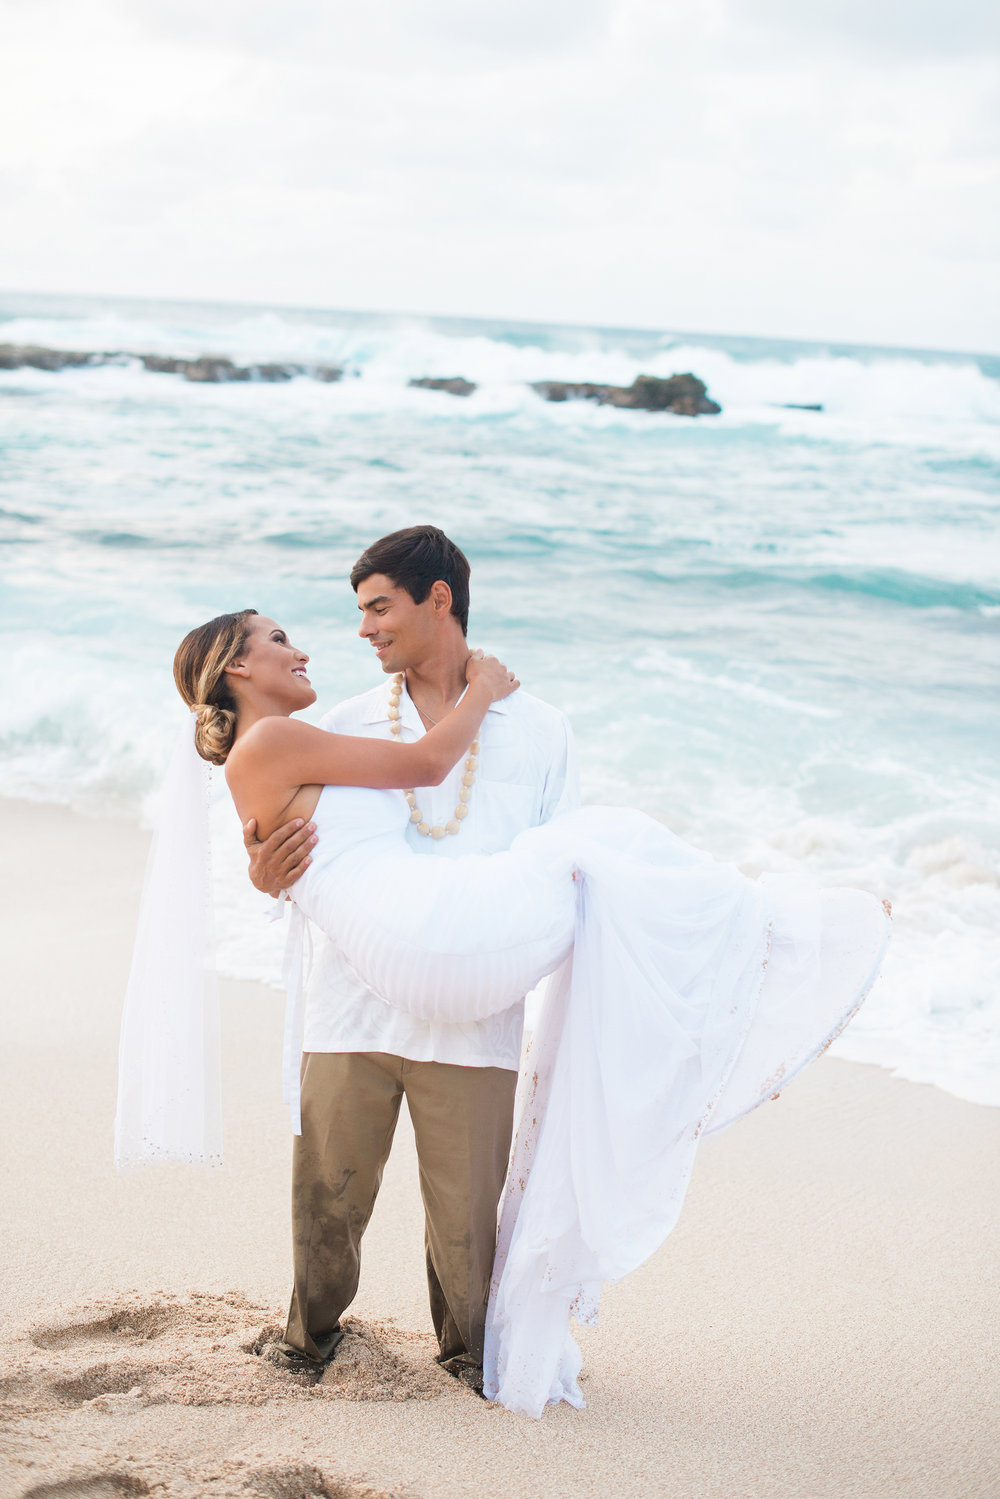 Hawaiian-Elopement-Marianne-Blackham-Photography-couple-sand.jpg